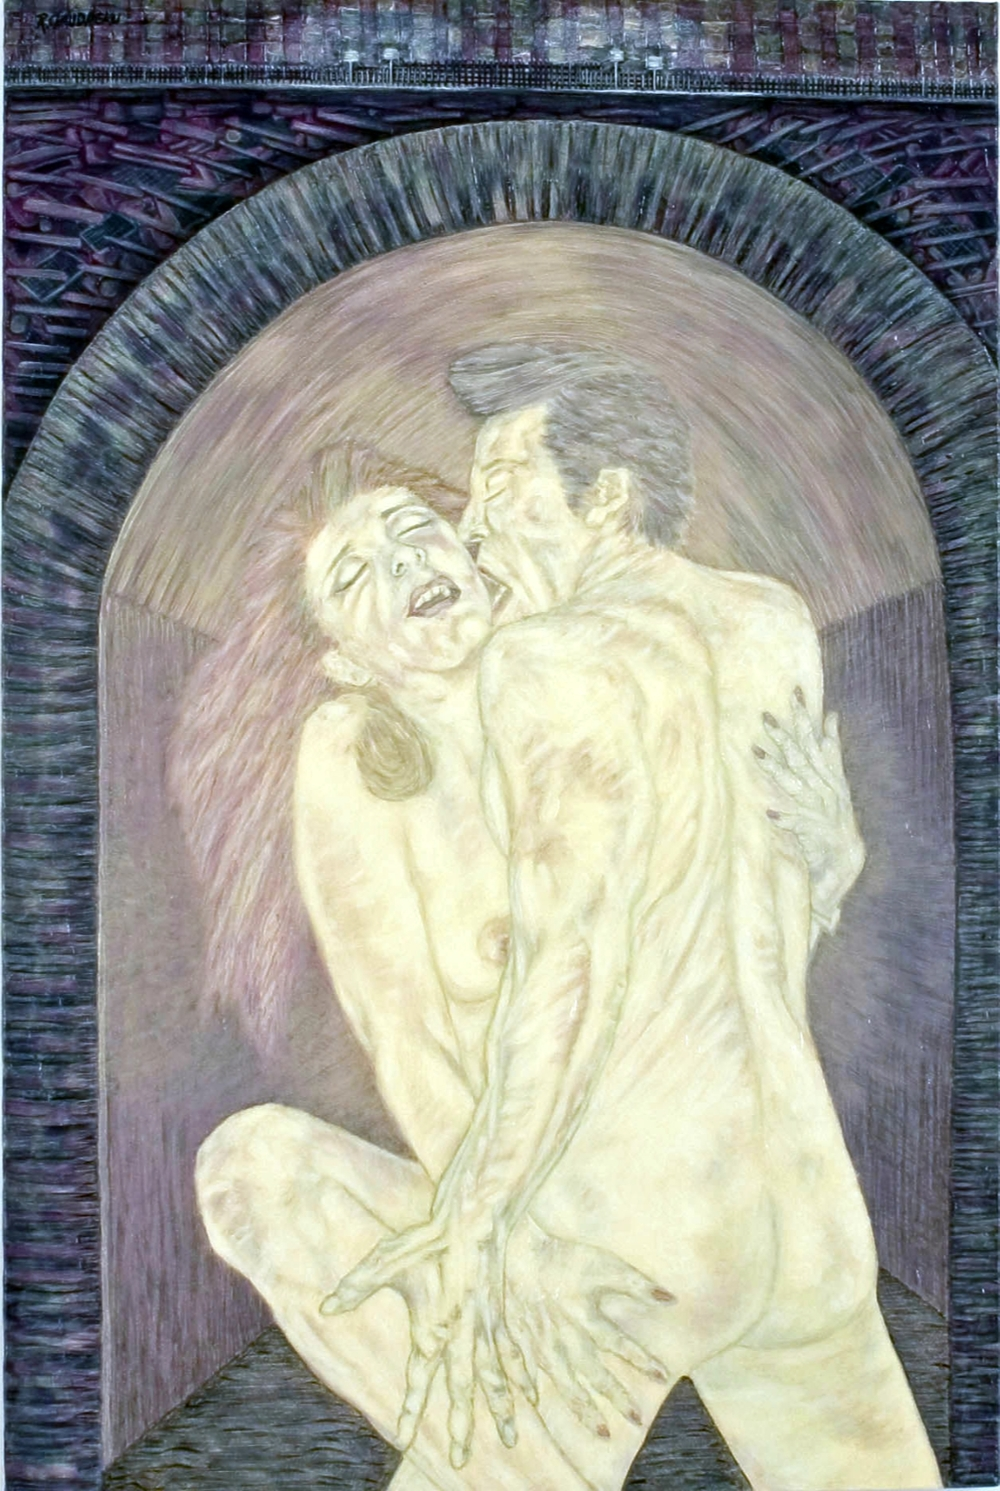 Lovers Ghost 1997 oil on canvas 30 x 20 inches